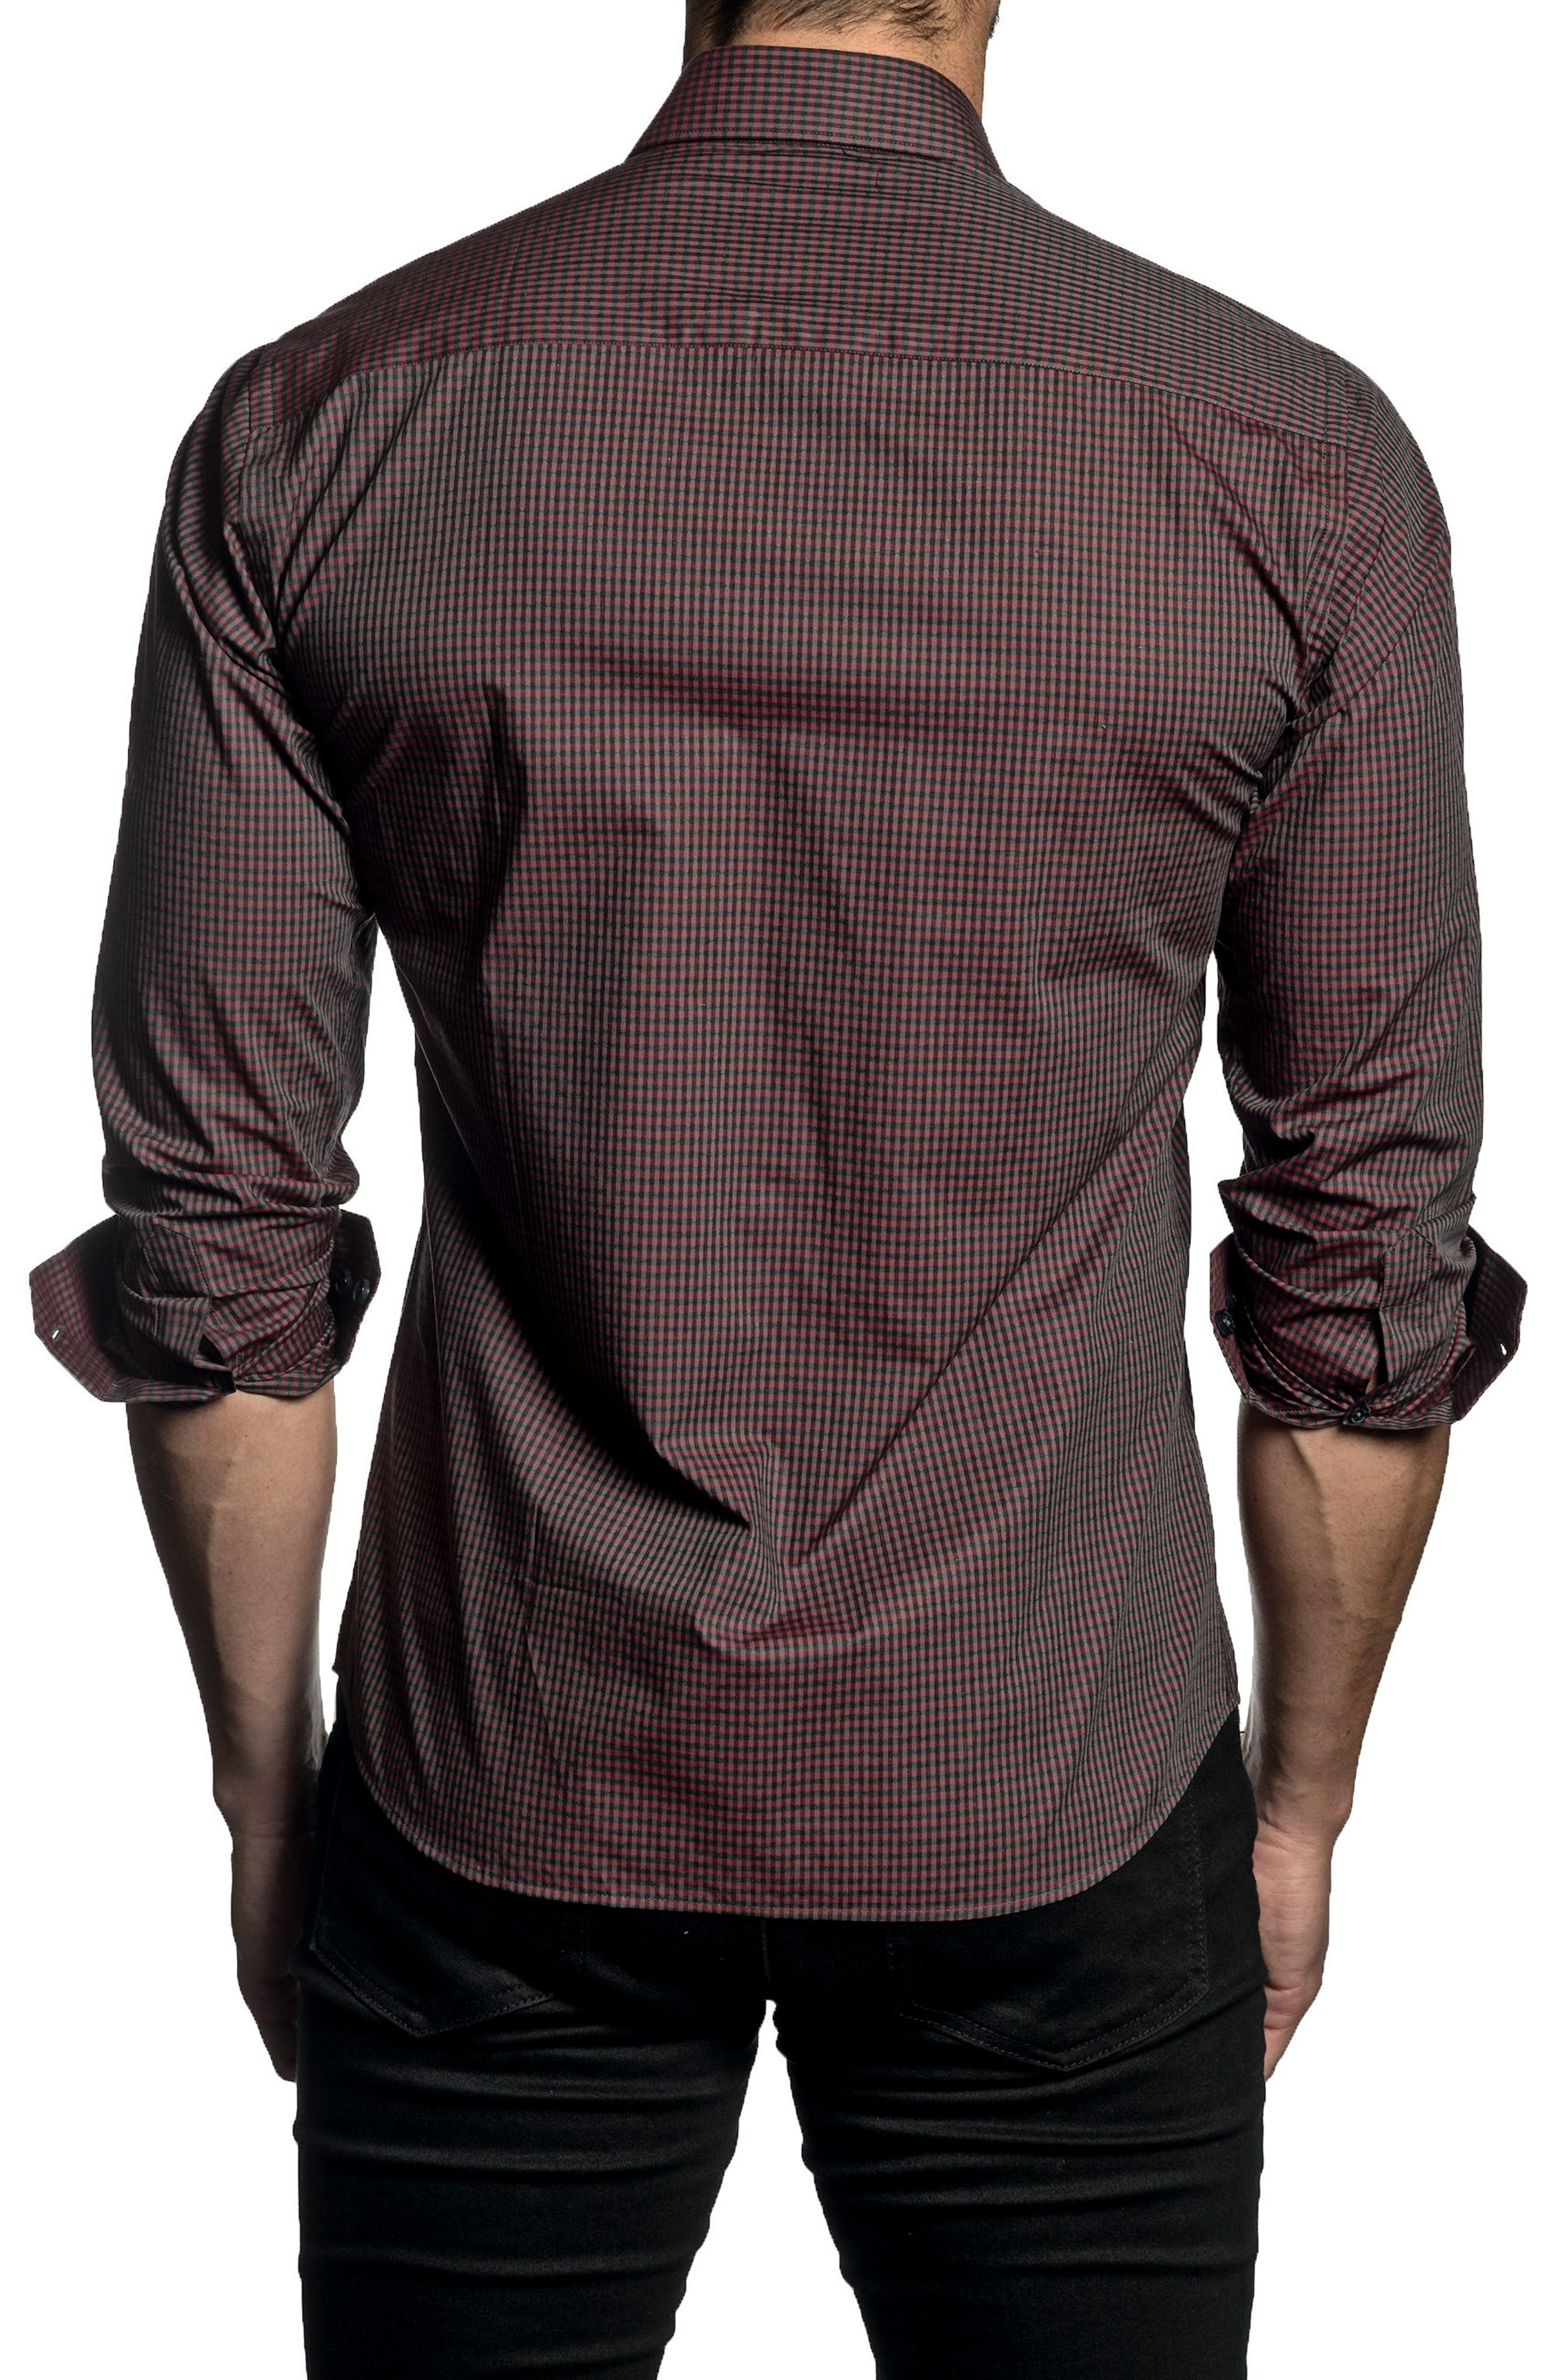 Trim Fit Check Sport Shirt,                             Alternate thumbnail 2, color,                             Red/ Grey Melange Check